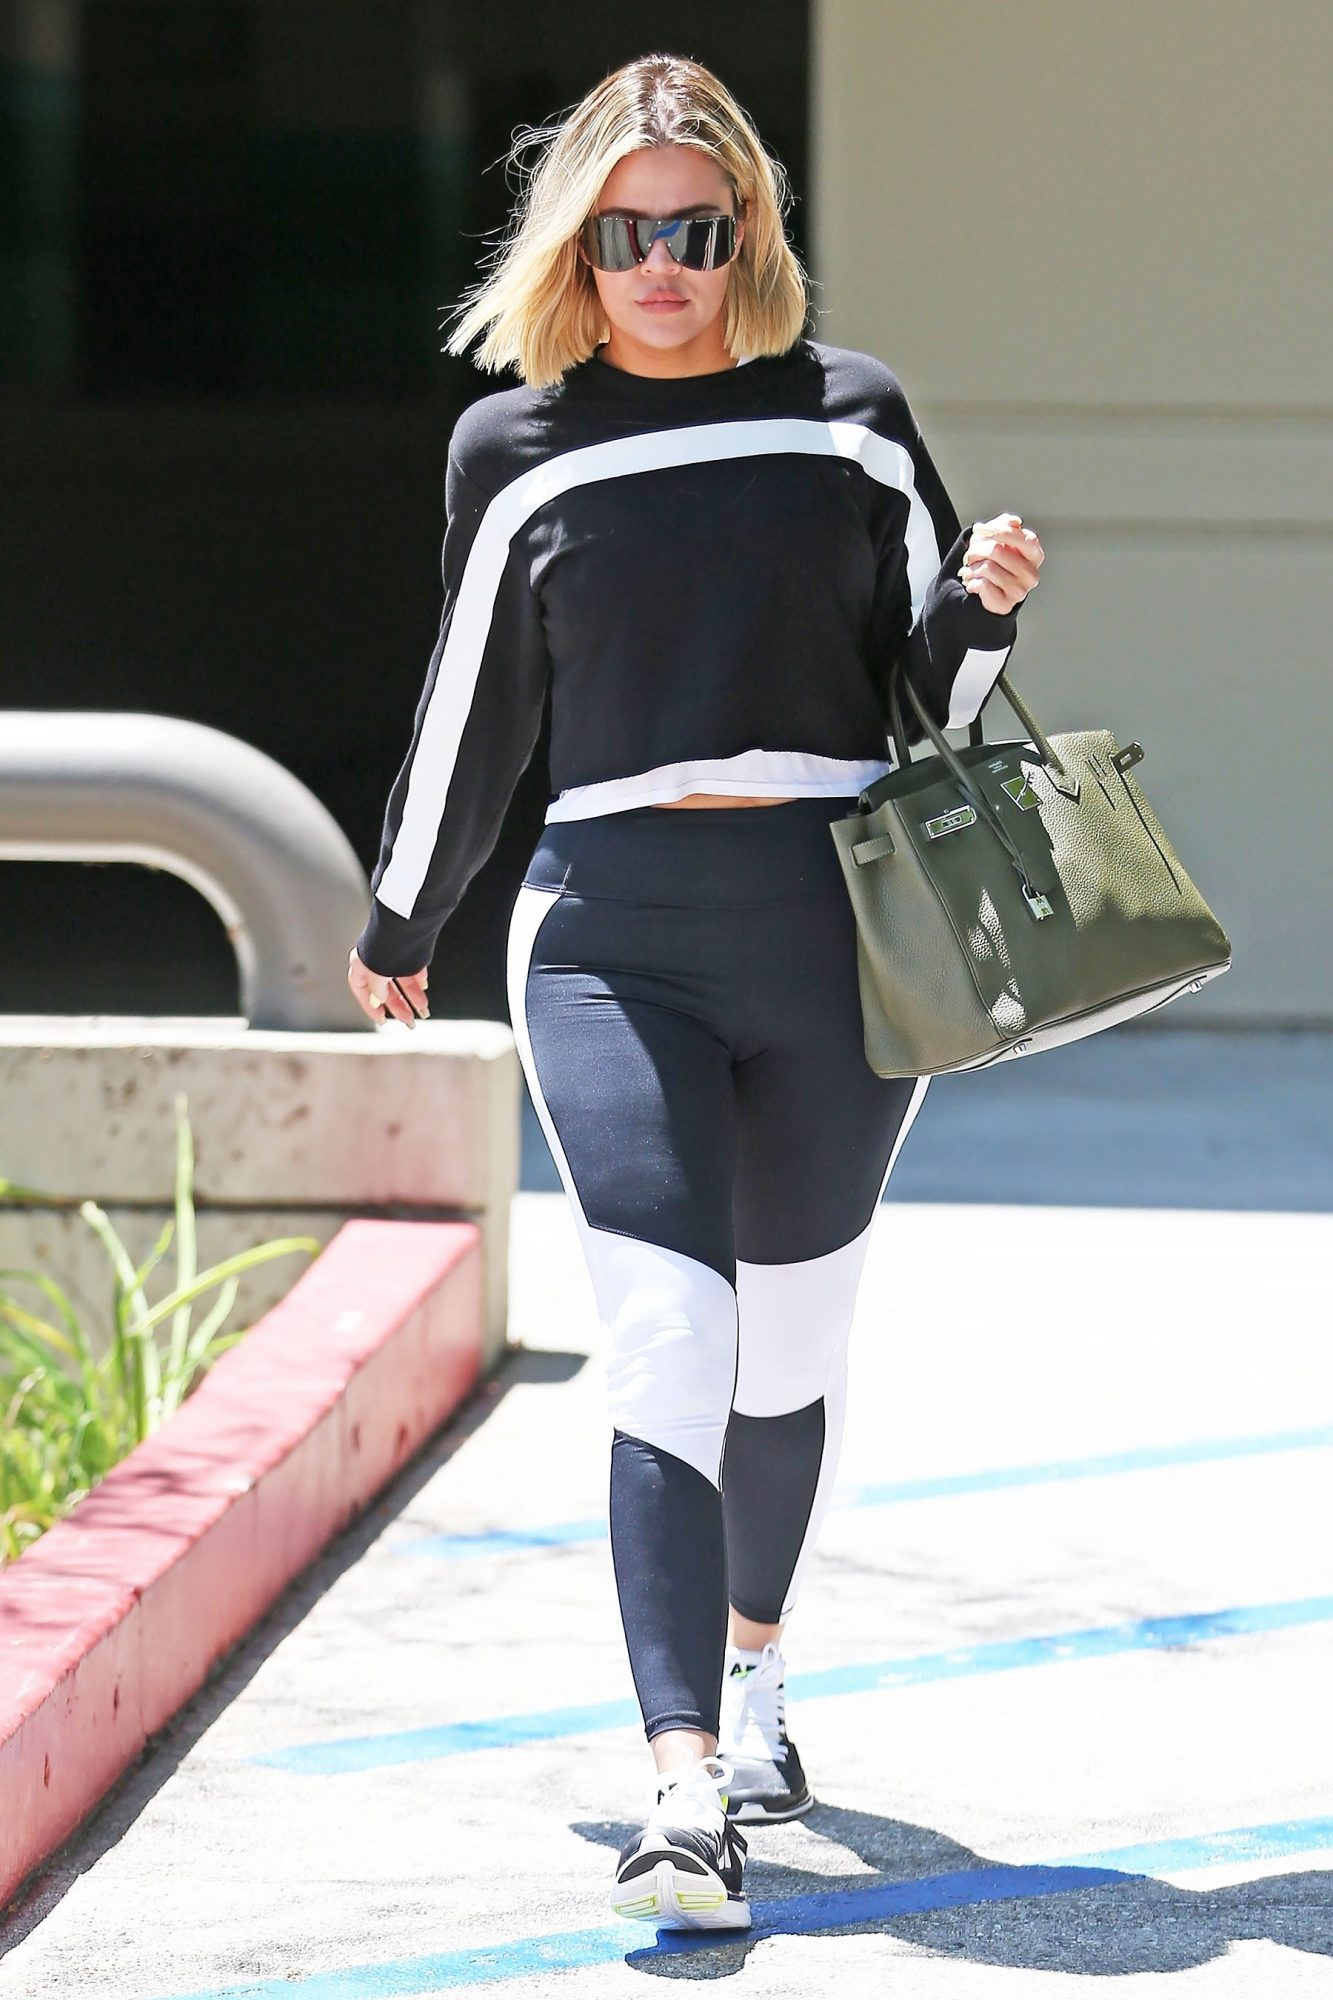 Khloé is my ultimate fitspiration. Where canI find these sneakersshe woreto workout?- Hailey                             KoKo's sporty black and whiteAPL sneakersare lightweight, breathable and perfect for an intense gym session.